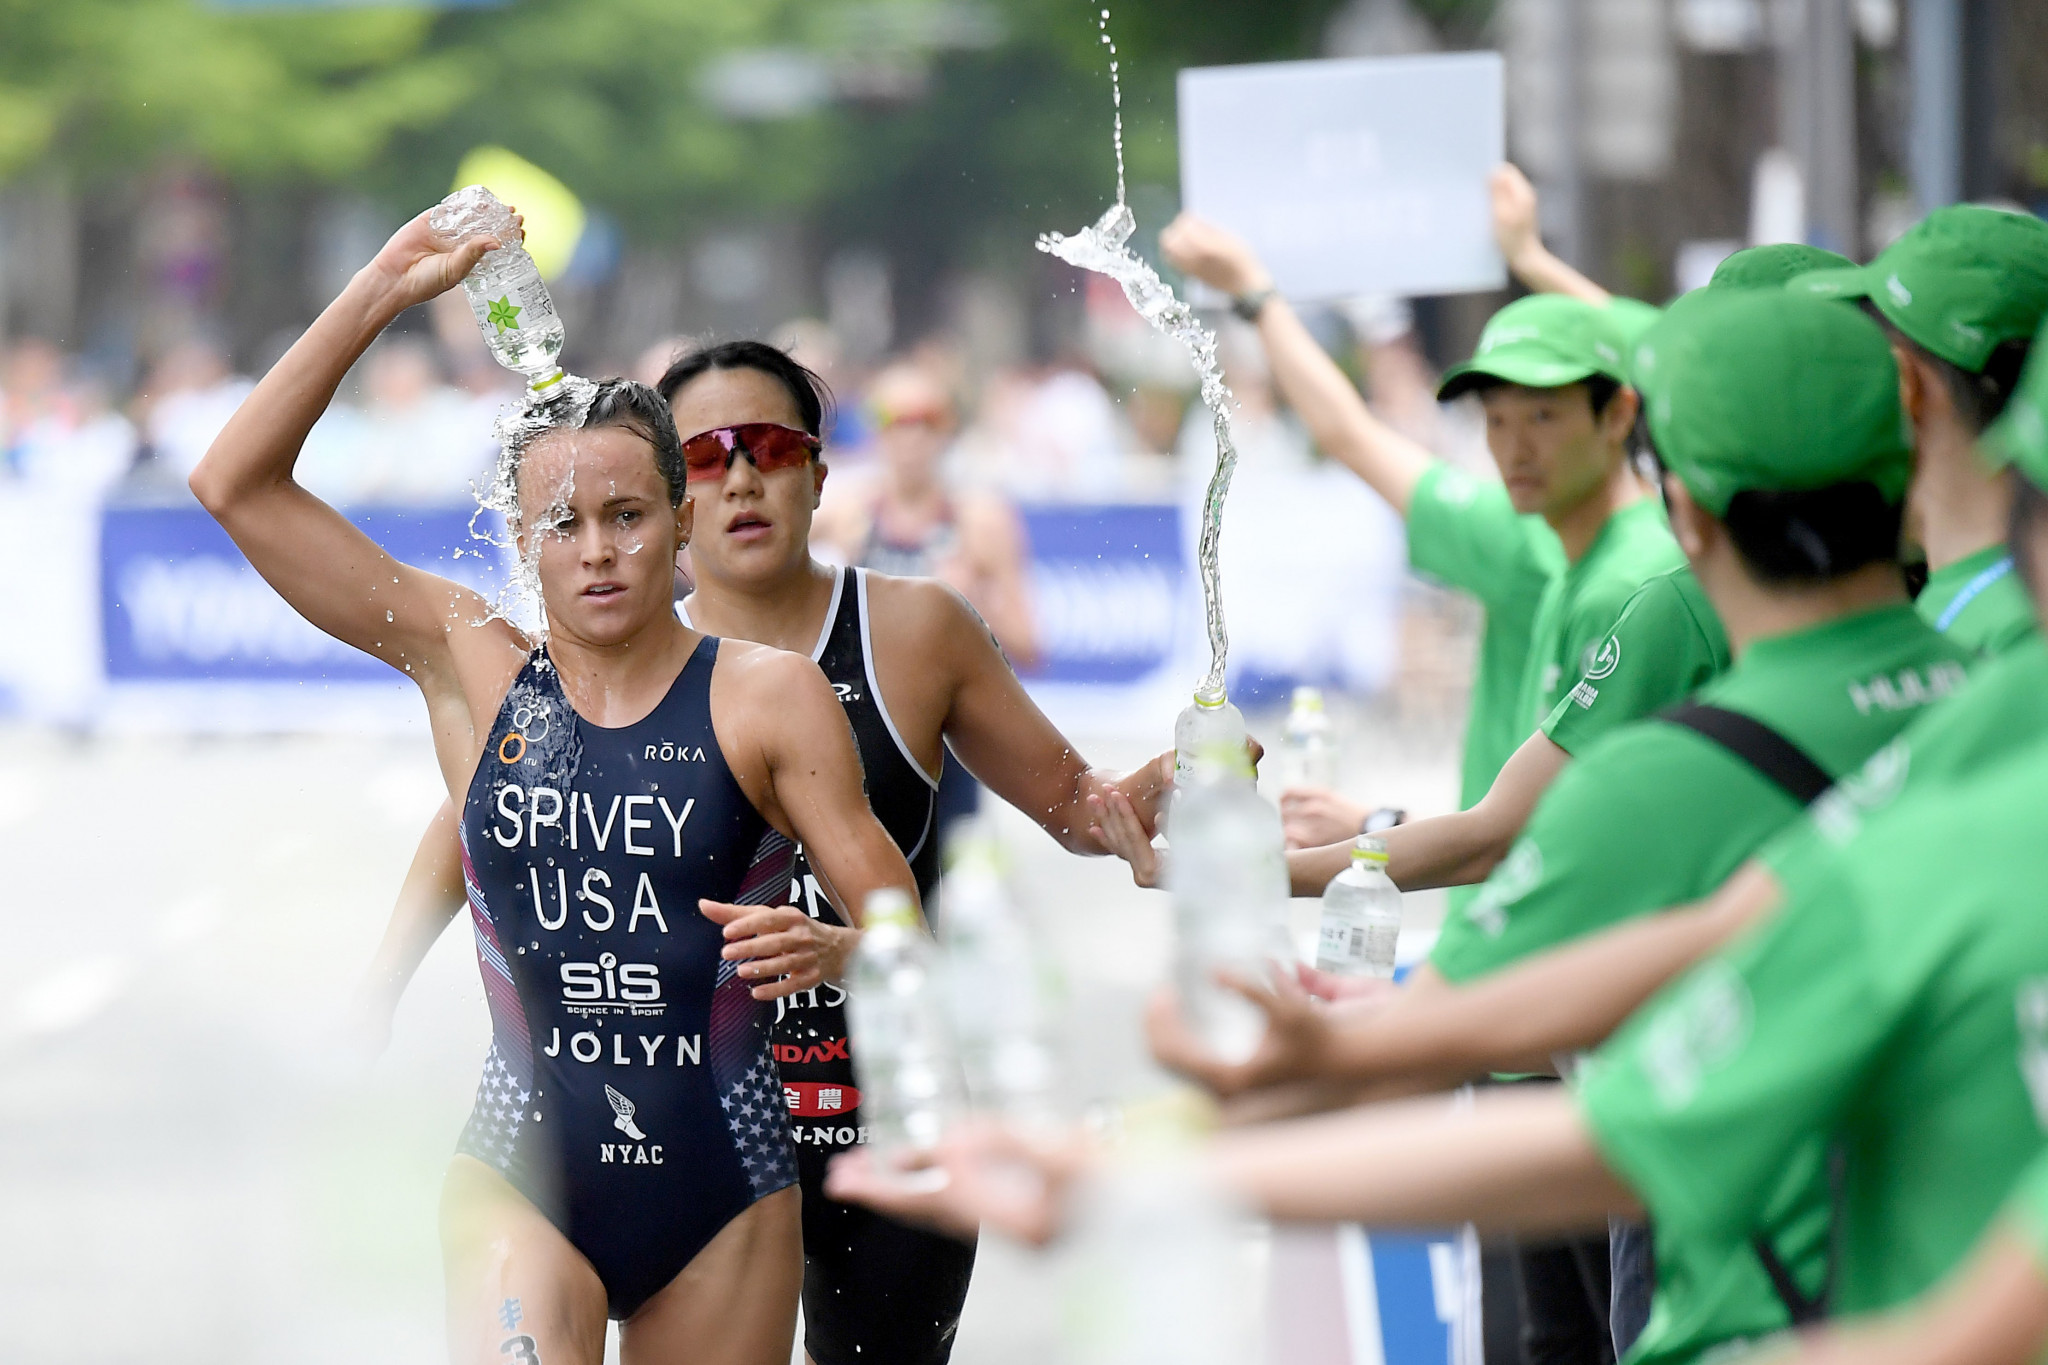 A series of measures designed to help protect athletes from the heat and humidity will be in place at the World Olympic Qualification event in Tokyo this month ©ITU